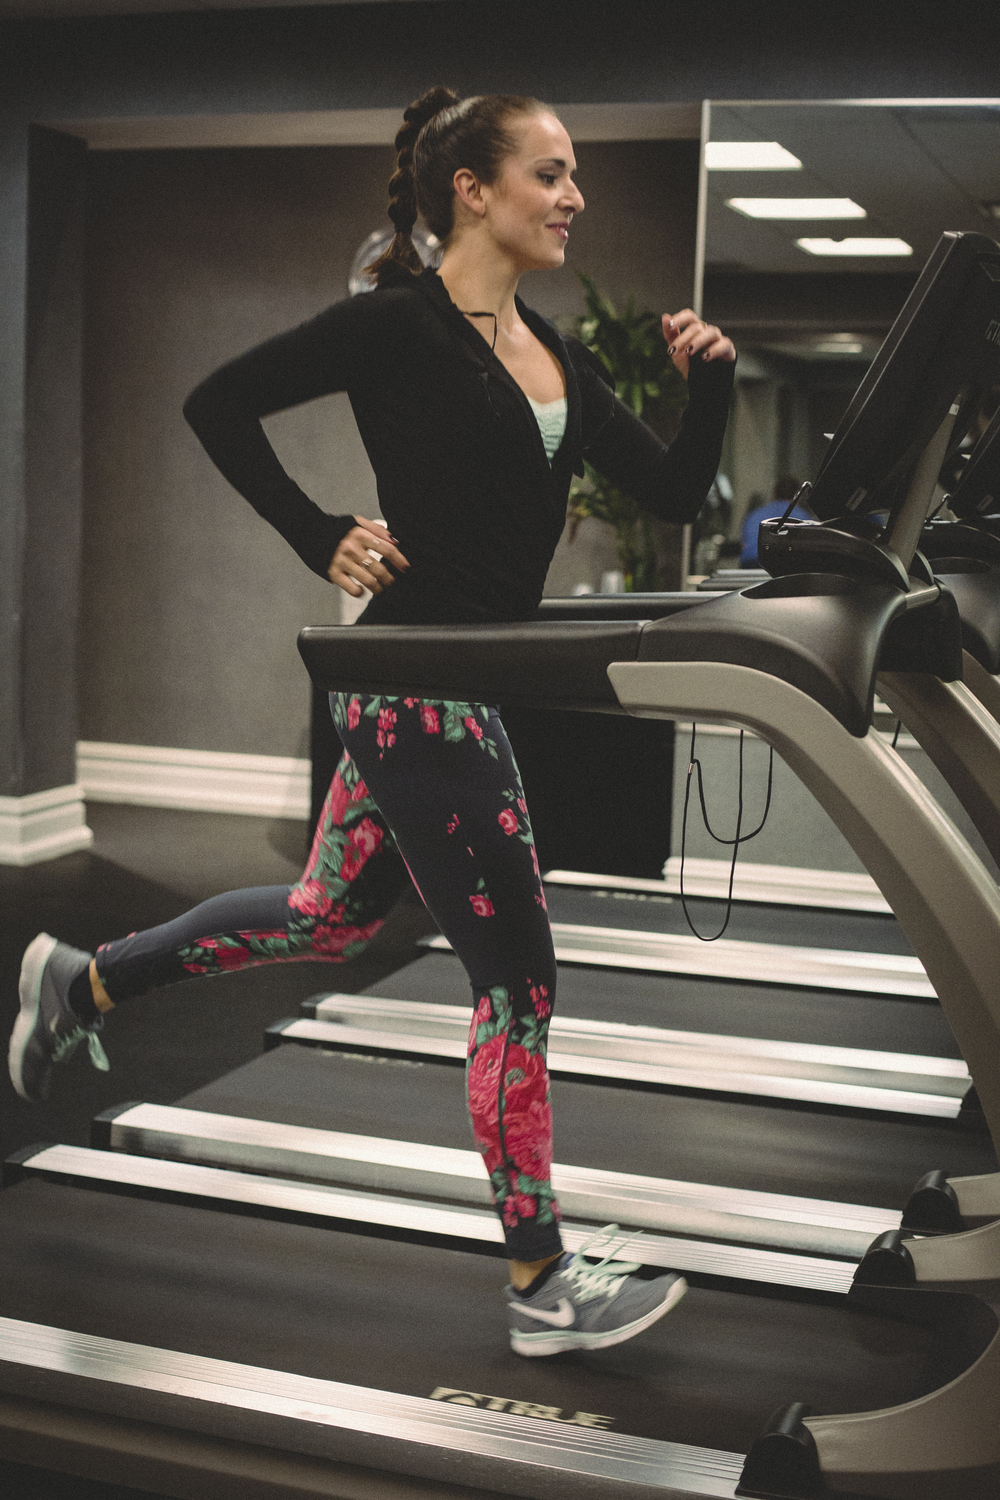 In my Athleta hoodie and Albion fit floral workout leggings and Nikes at the gym. Photography by Francisco Graciano.